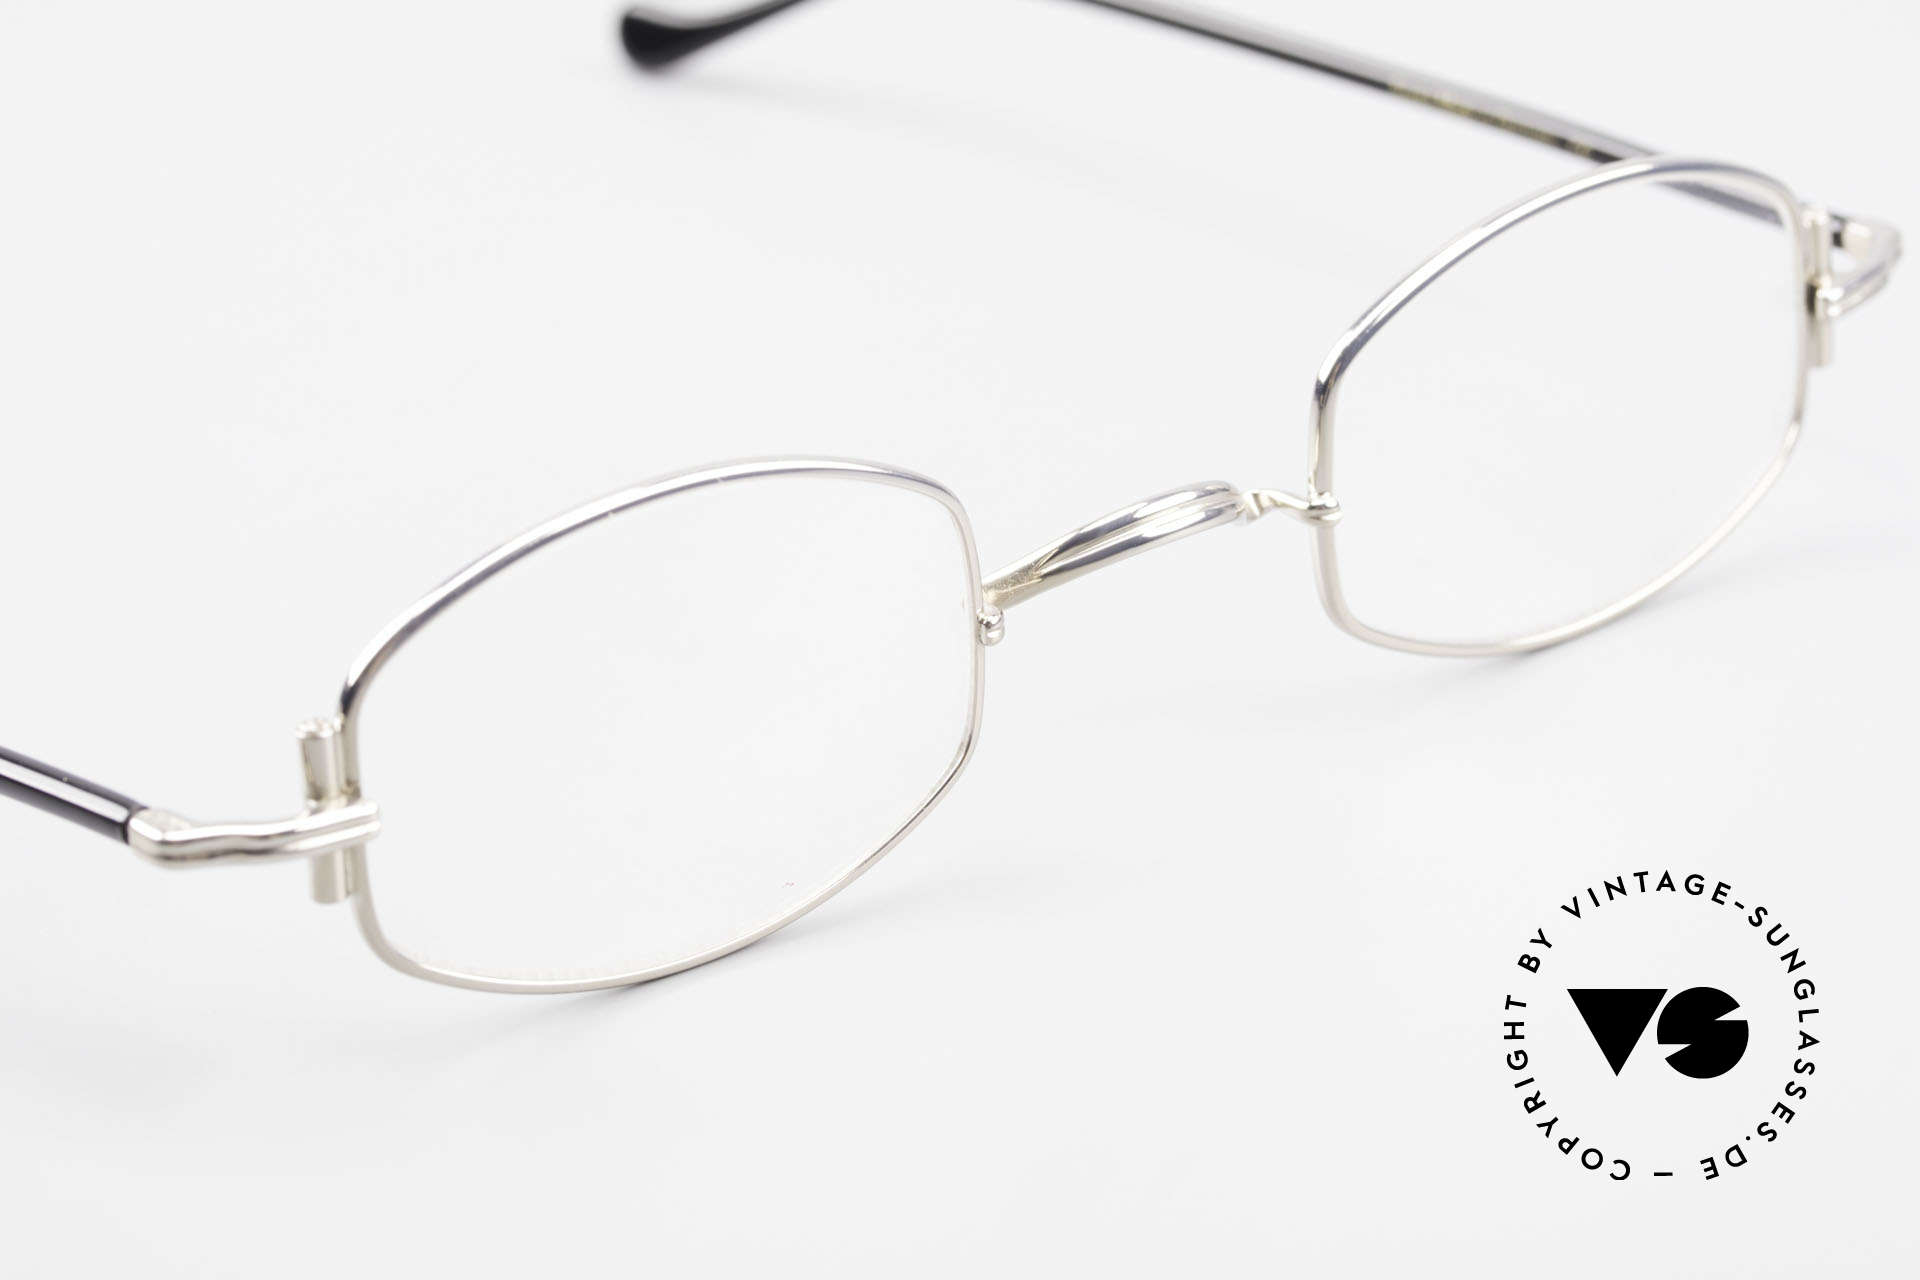 Lunor XA 03 No Retro Lunor Glasses Vintage, an old, but an unworn RARITY (for all lovers of quality), Made for Men and Women